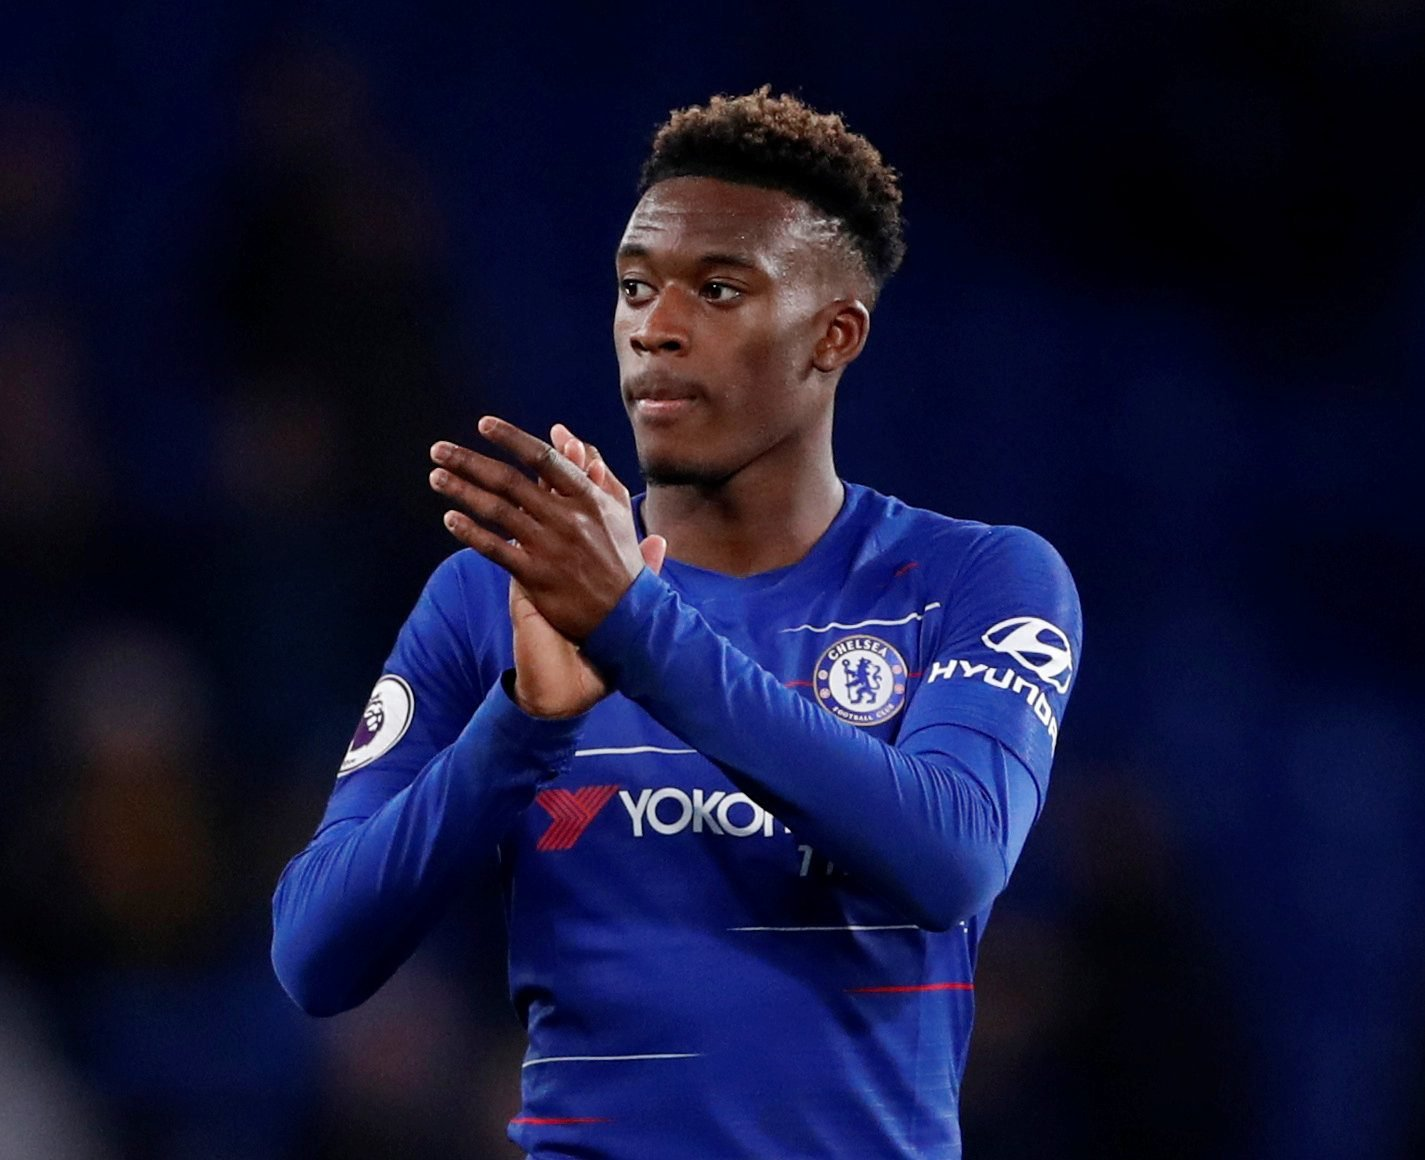 Hudson Odoi claps fans e1554388099873 - Hudson-Odoi and Shaqiri potential game-changers: Where Liverpool and Chelsea will be won & lost